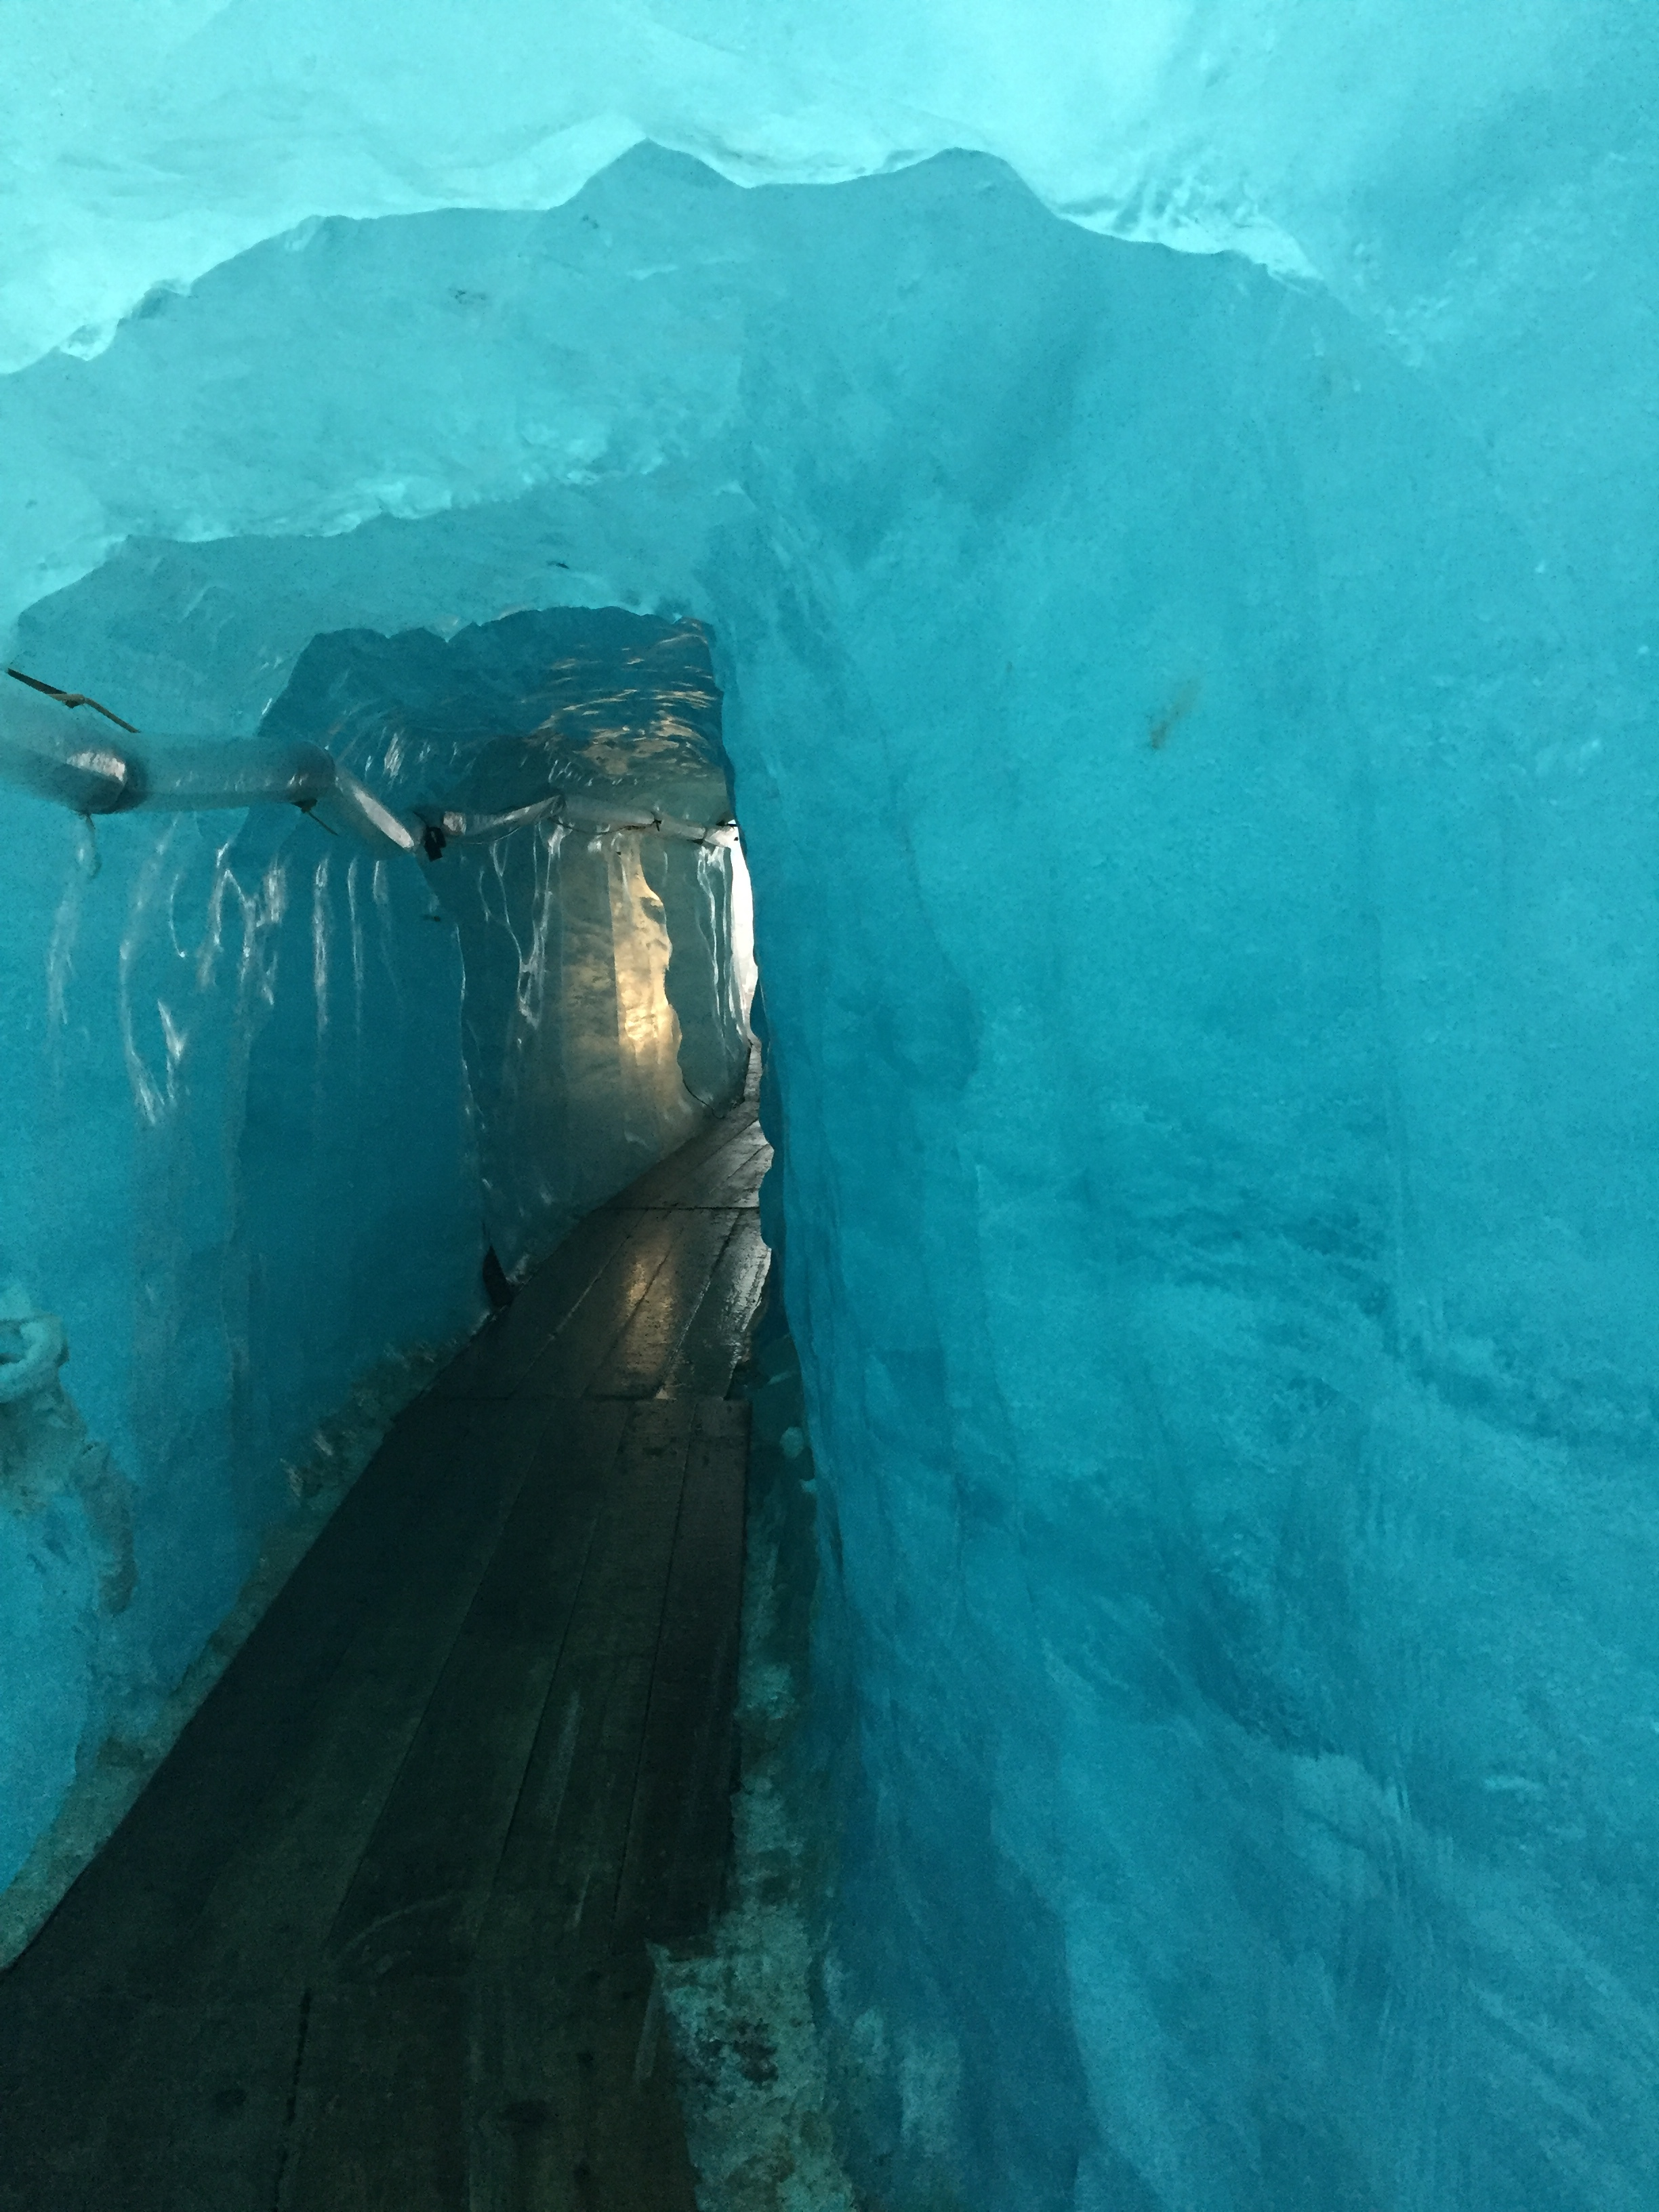 The Ice Grotto deep inside the glacier